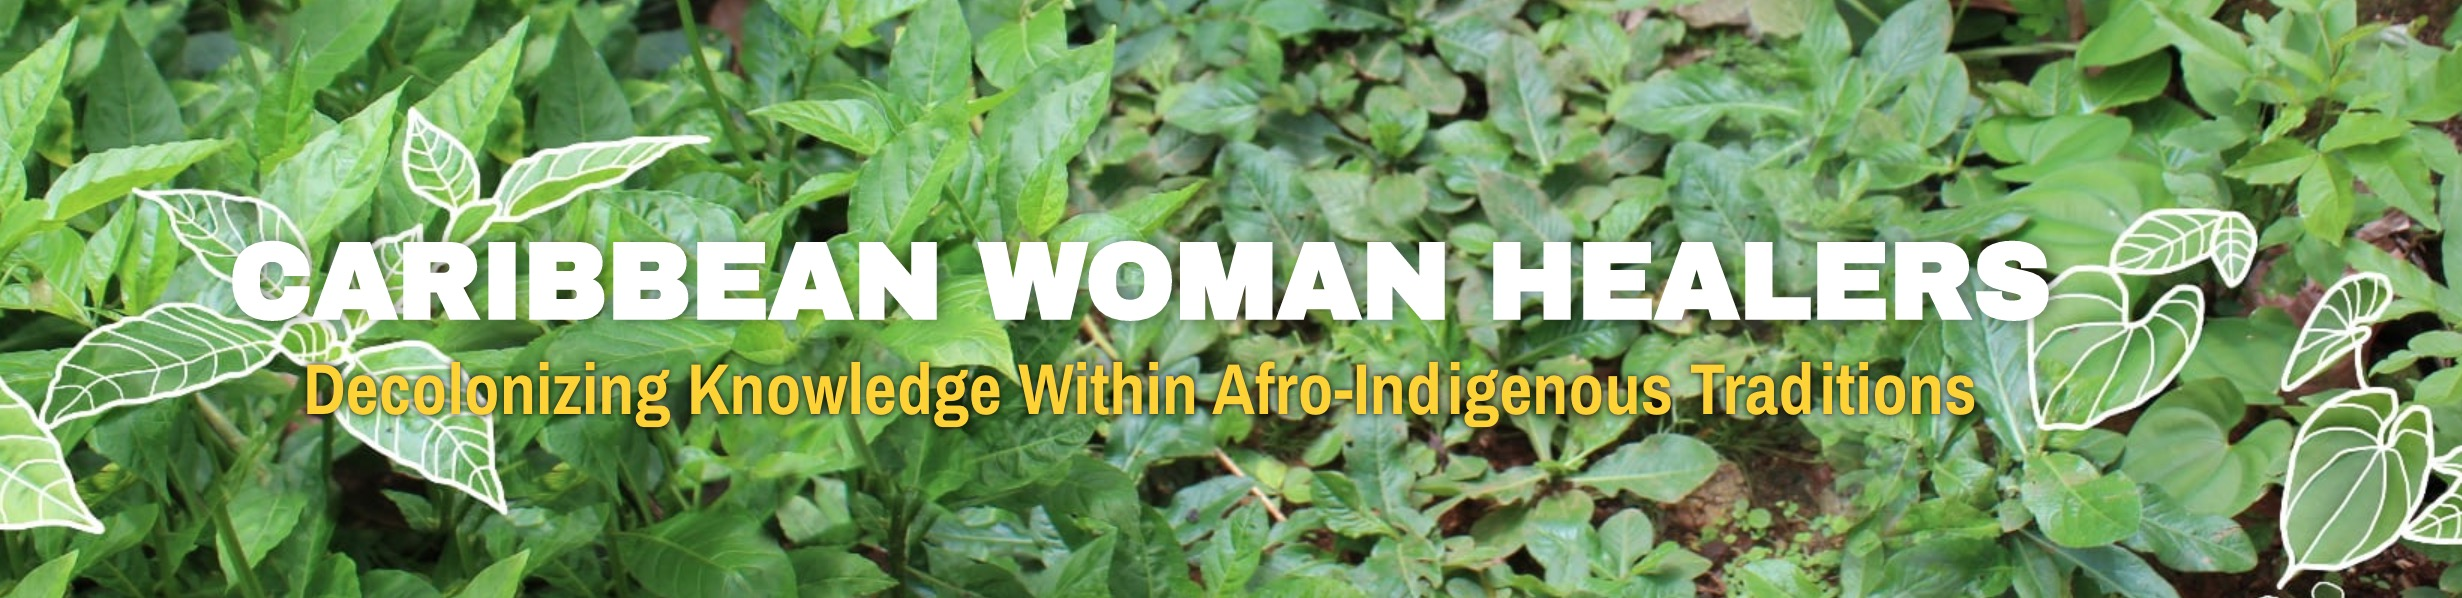 Screenshot of the Caribbean Women Healers website